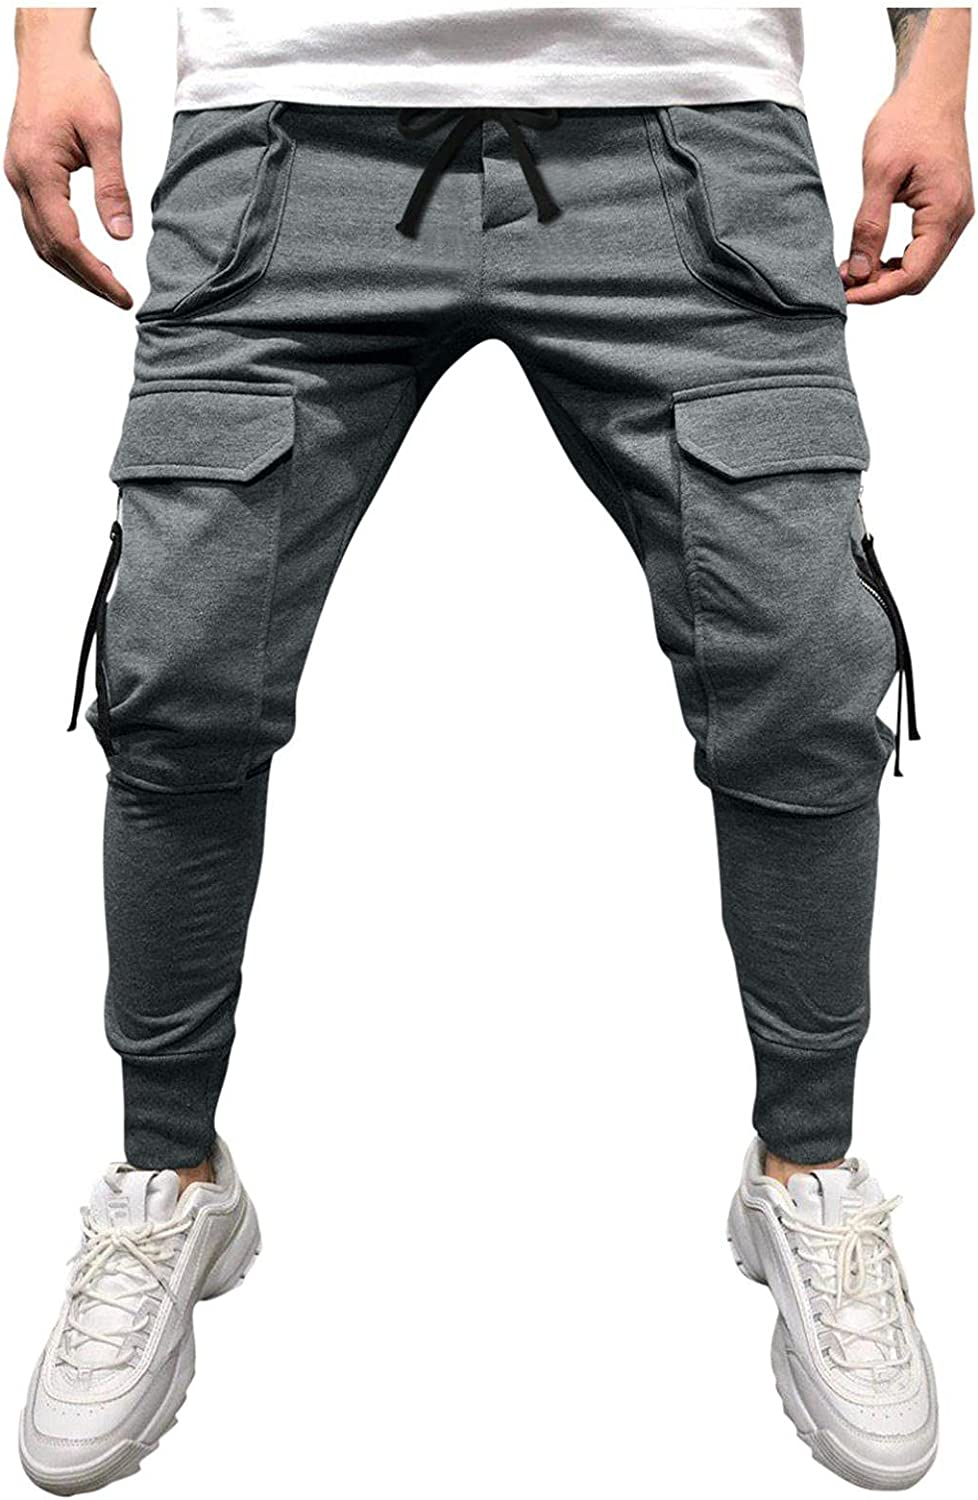 Beshion Sweatpants for Men Jogger Slim Casual Work Overalls Mid-Waist Drawstring Athletic Running Workout Pants with Pocket